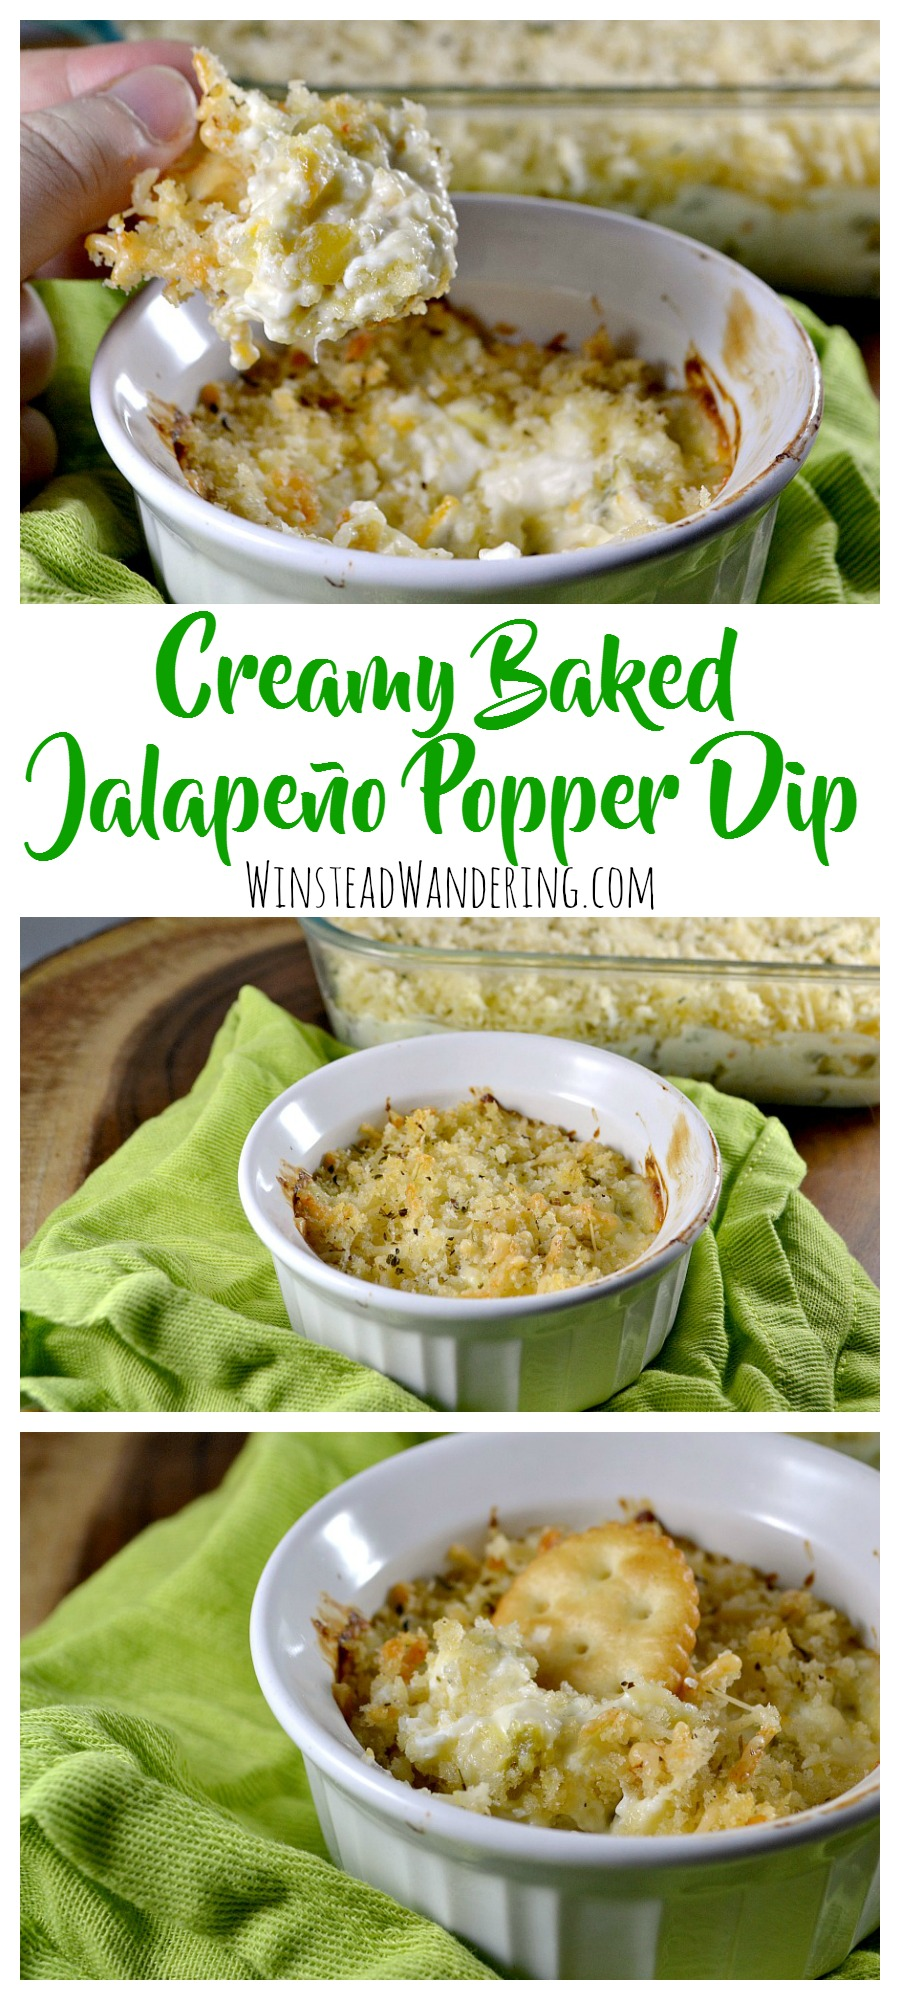 Warm, cheesy, melty, and perfectly spicy, Creamy Baked Jalapeño Popper Dip is the perfect easy, crowd-pleasing, make-ahead recipe for your next party (or regular Friday night).